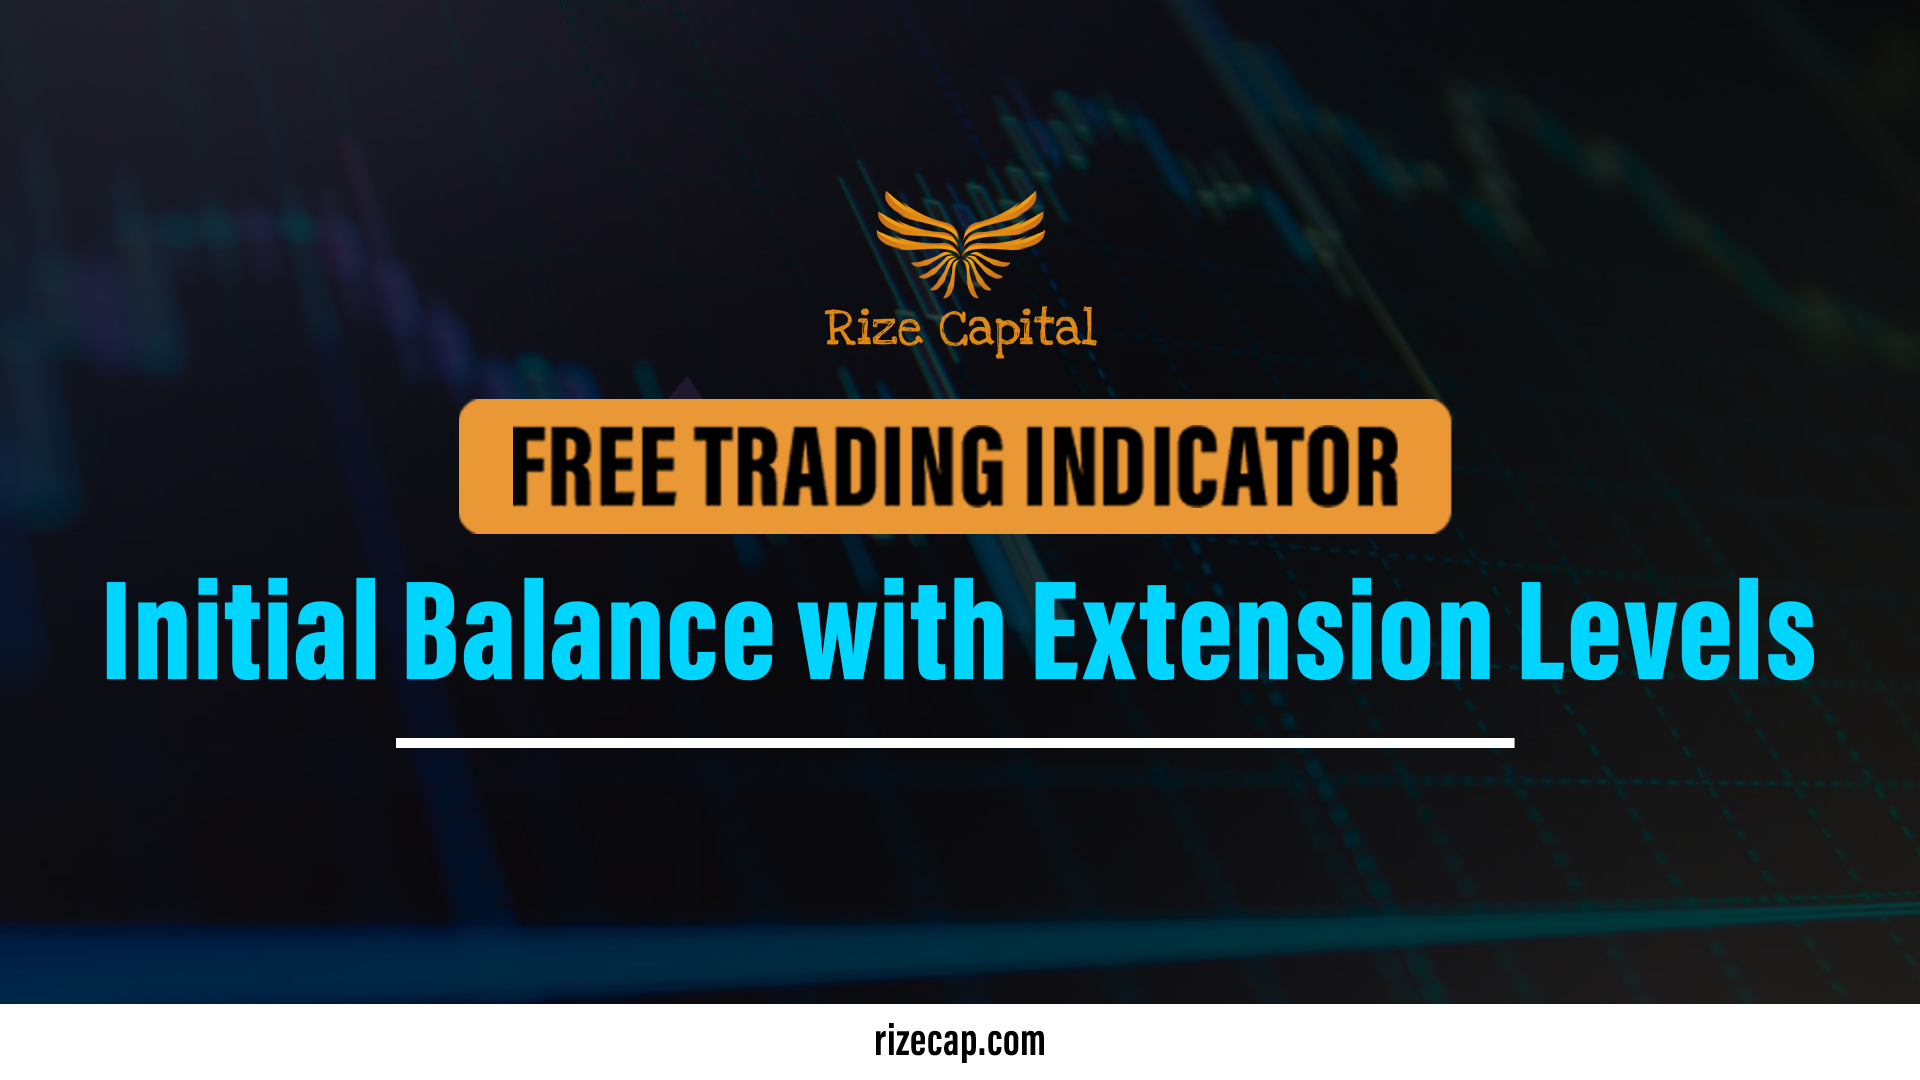 Initial Balance with Extension Levels Free indicator